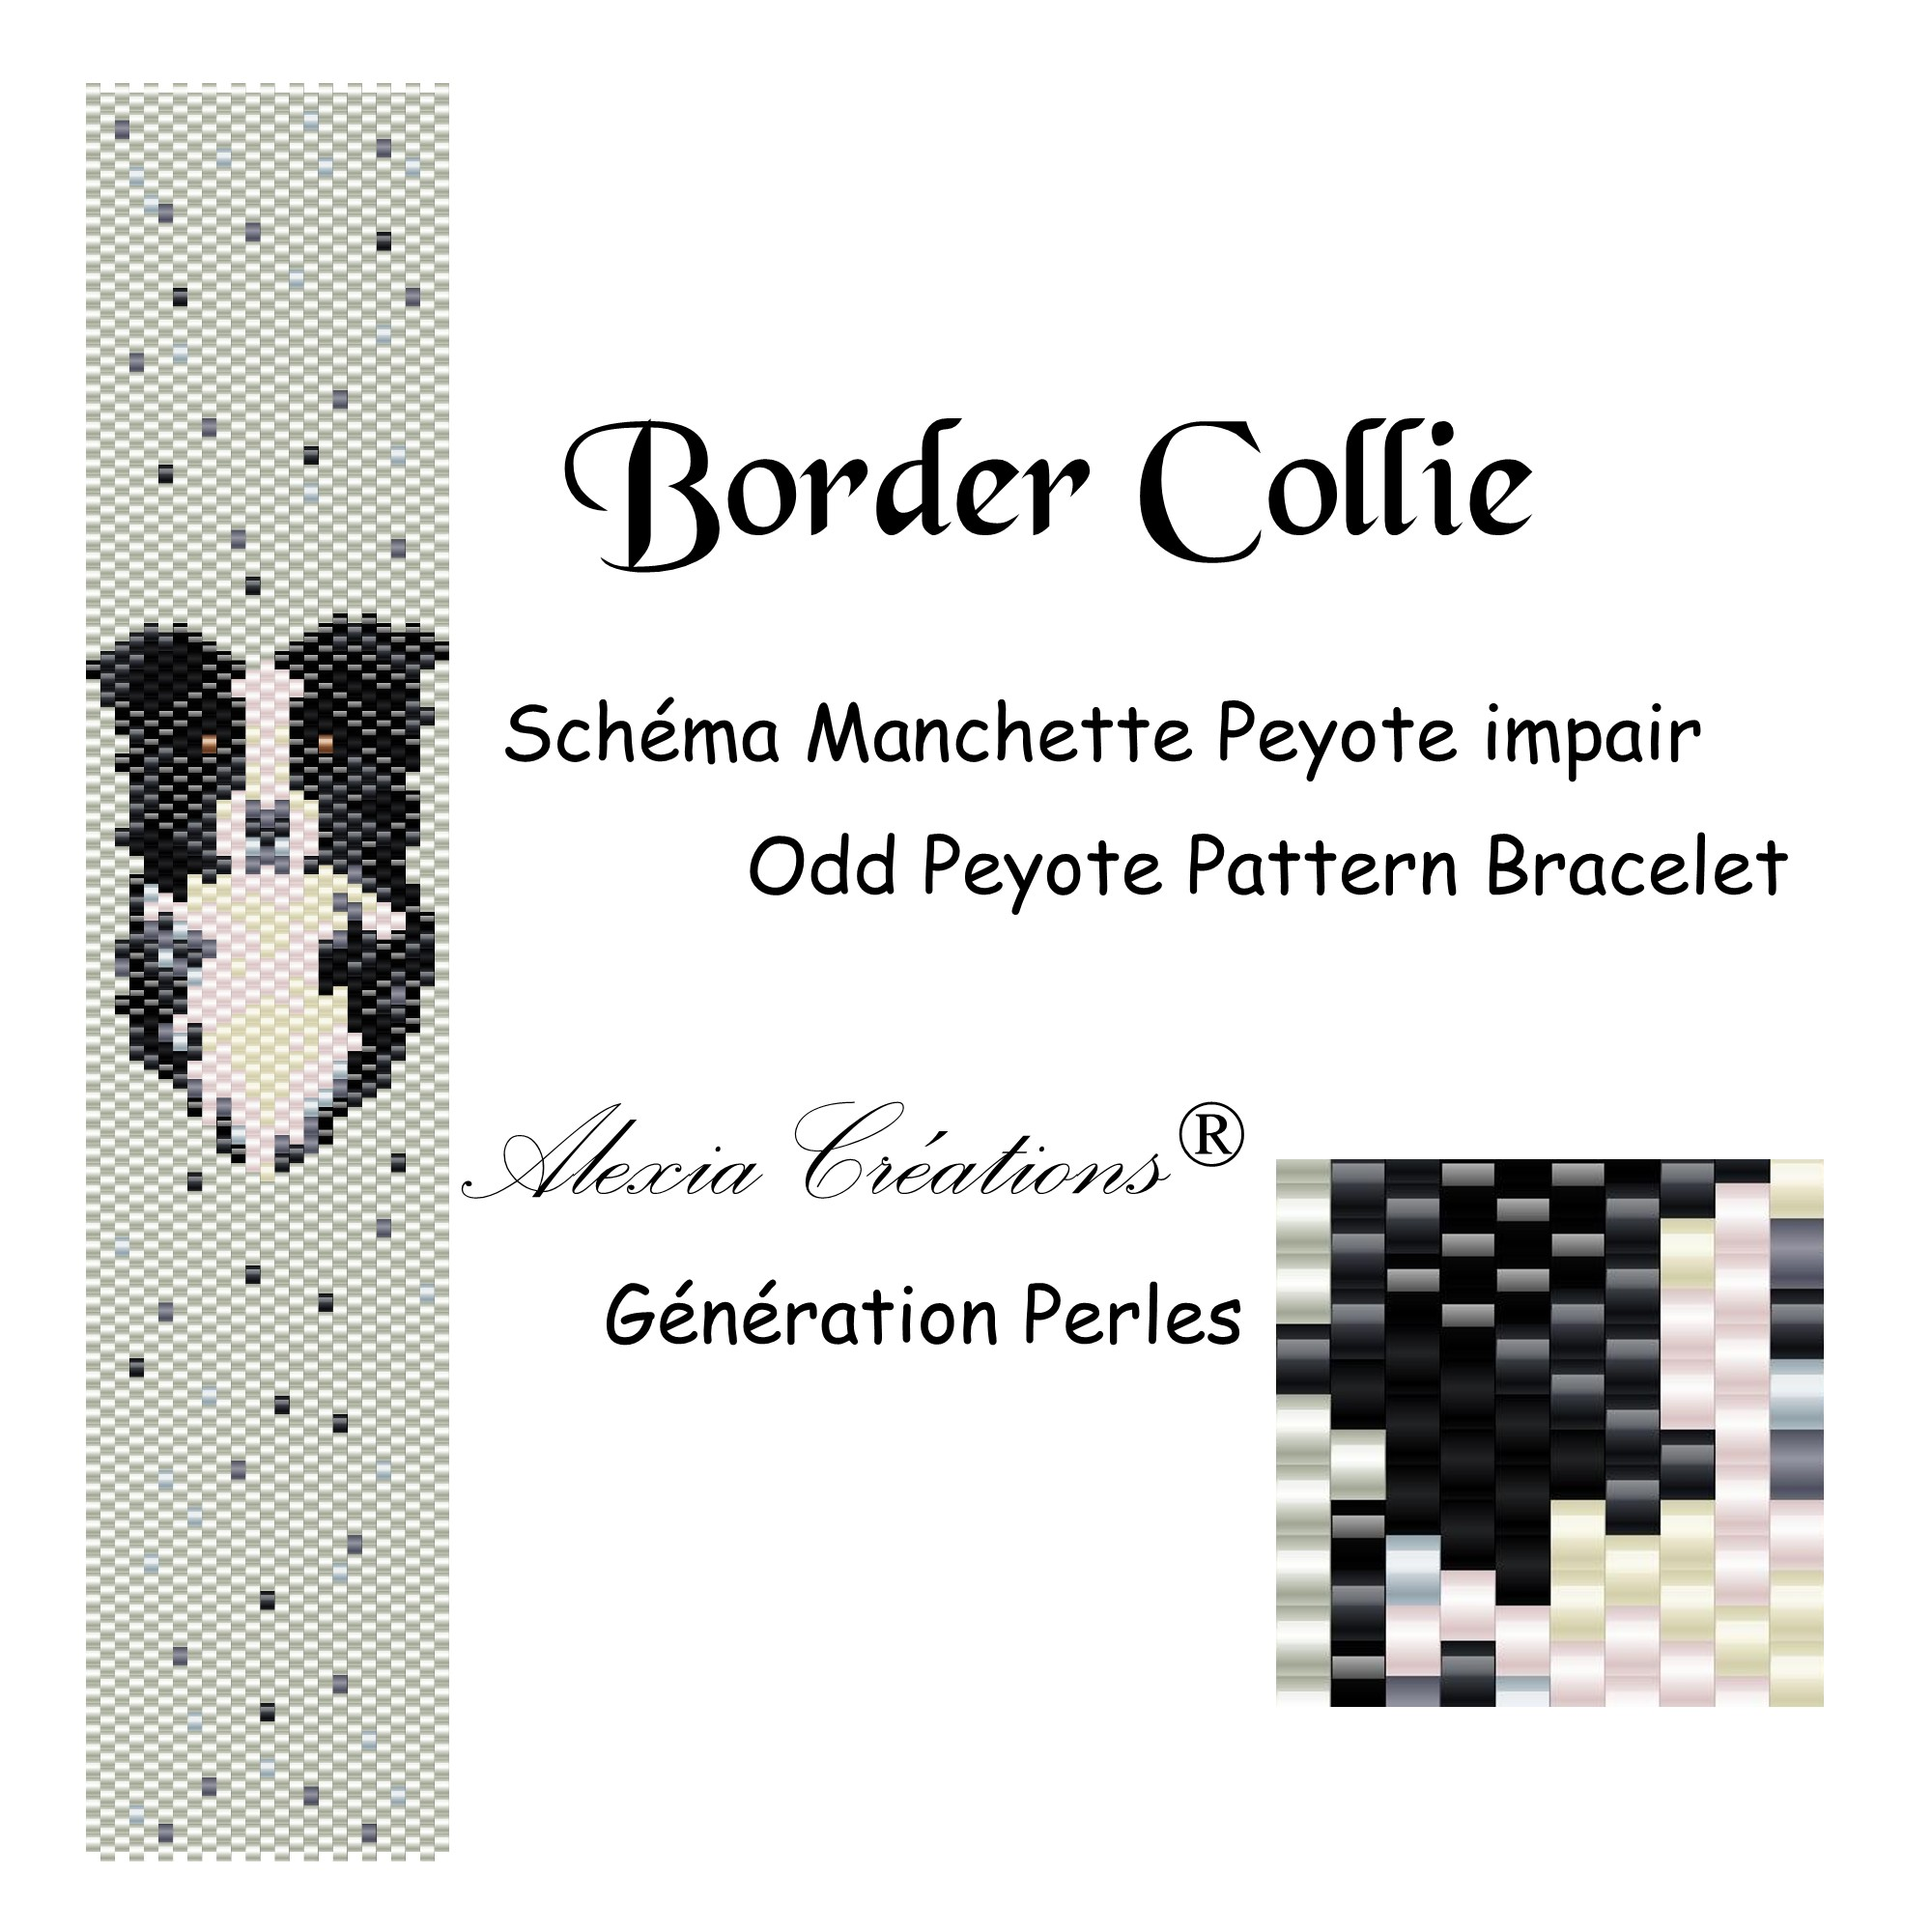 Manchette peyote impair Border Collie